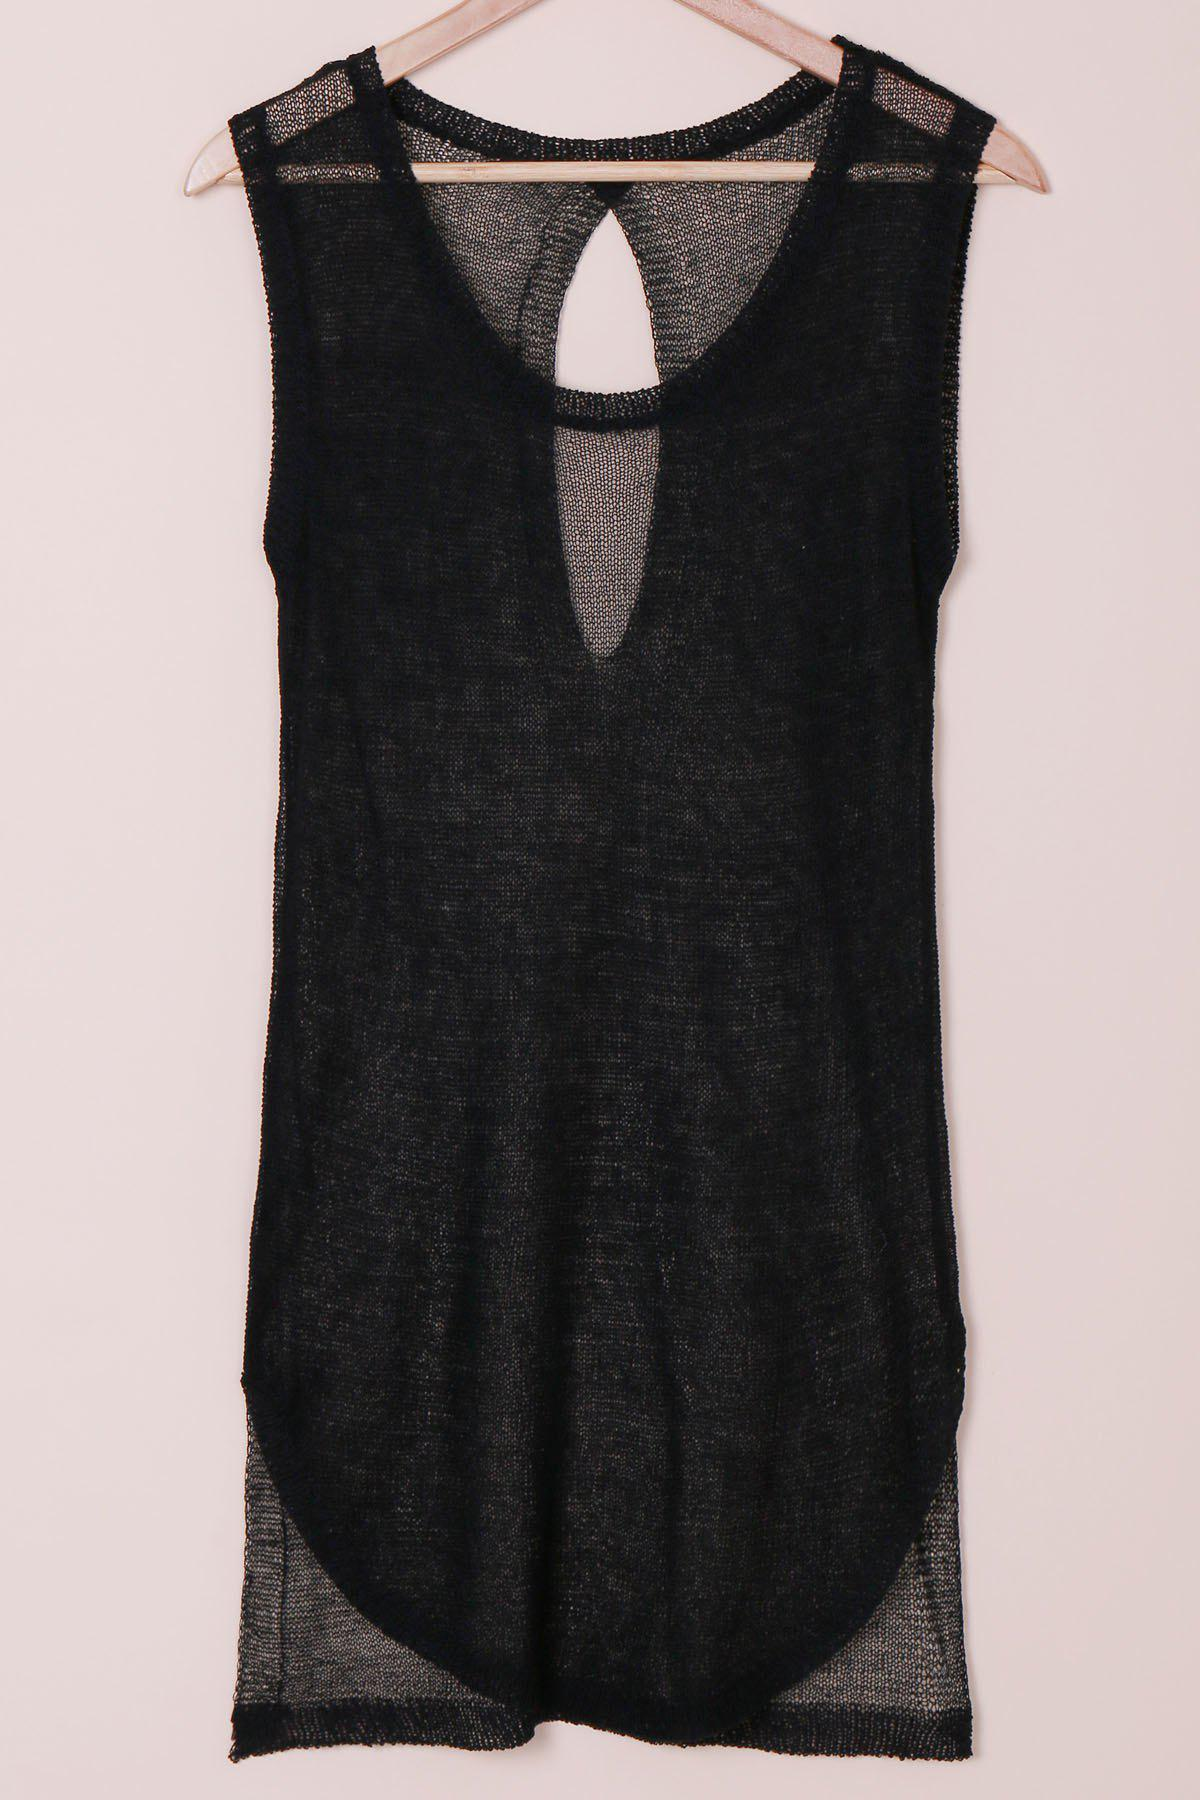 Sexy Scoop Neck Sleeveless Knitted Furcal Women's Cover-Up - BLACK ONE SIZE(FIT SIZE XS TO M)